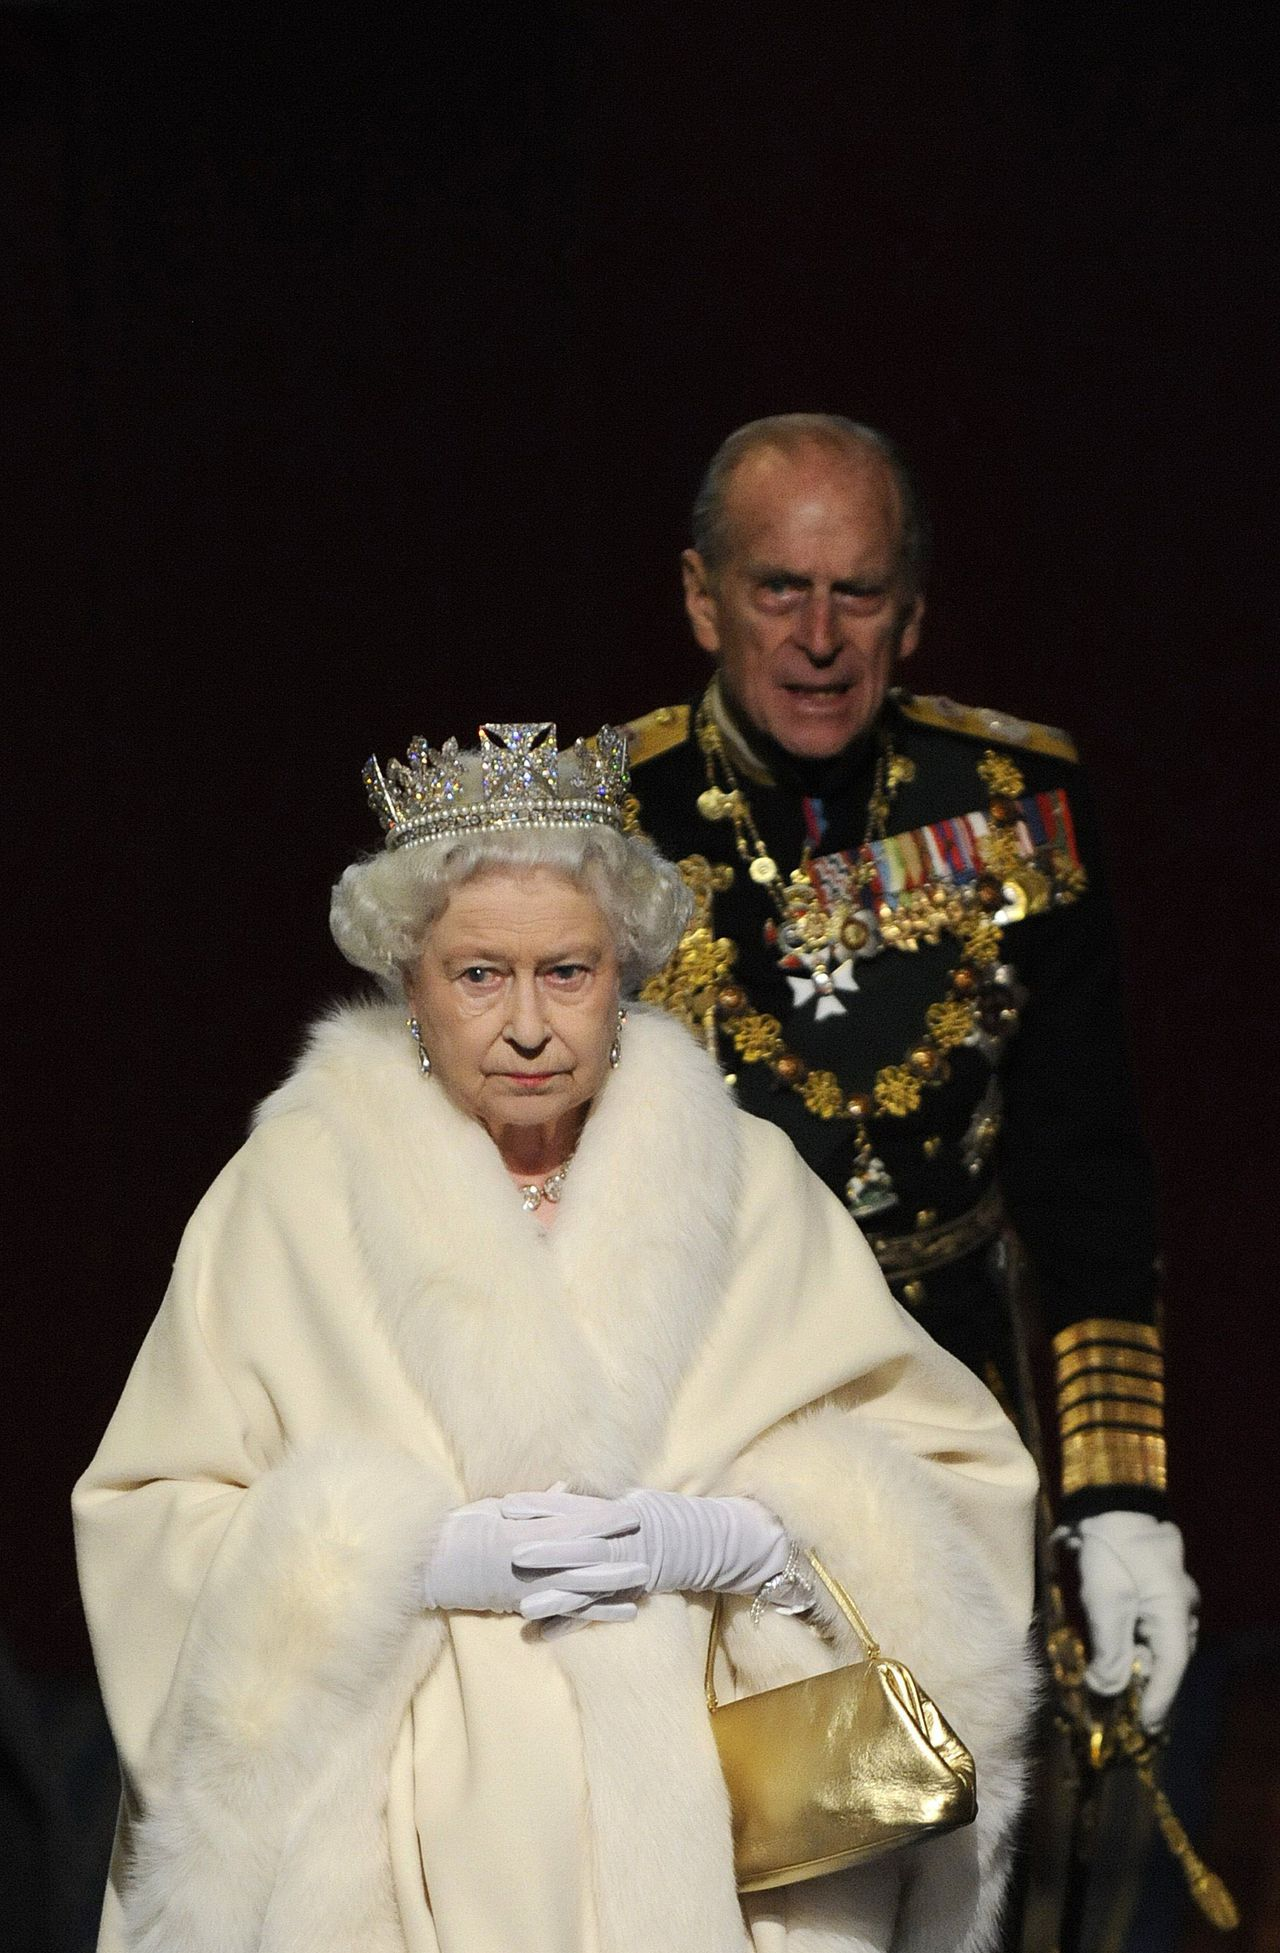 Britain's Queen Elizabeth II and her husband Prince Philip leave the Houses of Parliament after the annual State Opening of Parliament in London, on November 18, 2009. British Prime Minister Gordon Brown unveiled a crackdown on the banking industry Wednesday as part of a voter-friendly agenda designed to boost its chances at elections barely six months away. In a traditional Queen's Speech detailing its final legislative plans before ballots due by June, the government also put boosting growth and jobs as its top priority as Britain emerges from the global slowdown. AFP PHOTO/Toby Melville/WPA POOL